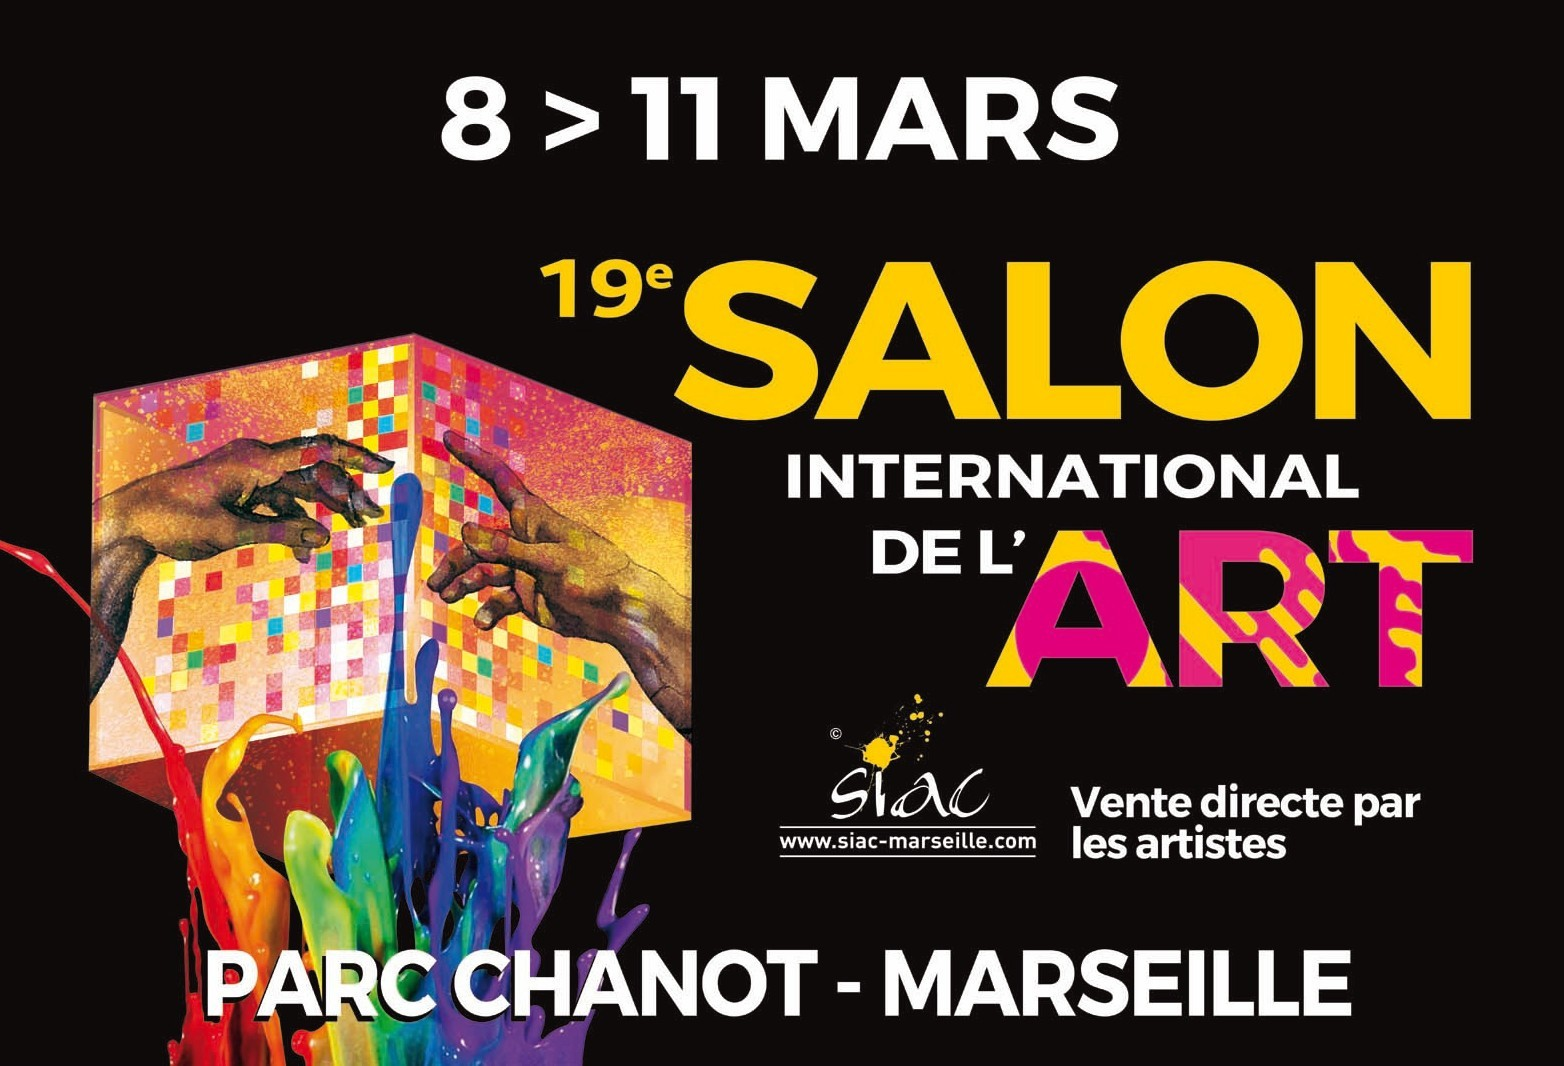 SIAC 2019 Salon International de l'Art Contemporain à Marseille au Parc Chanot